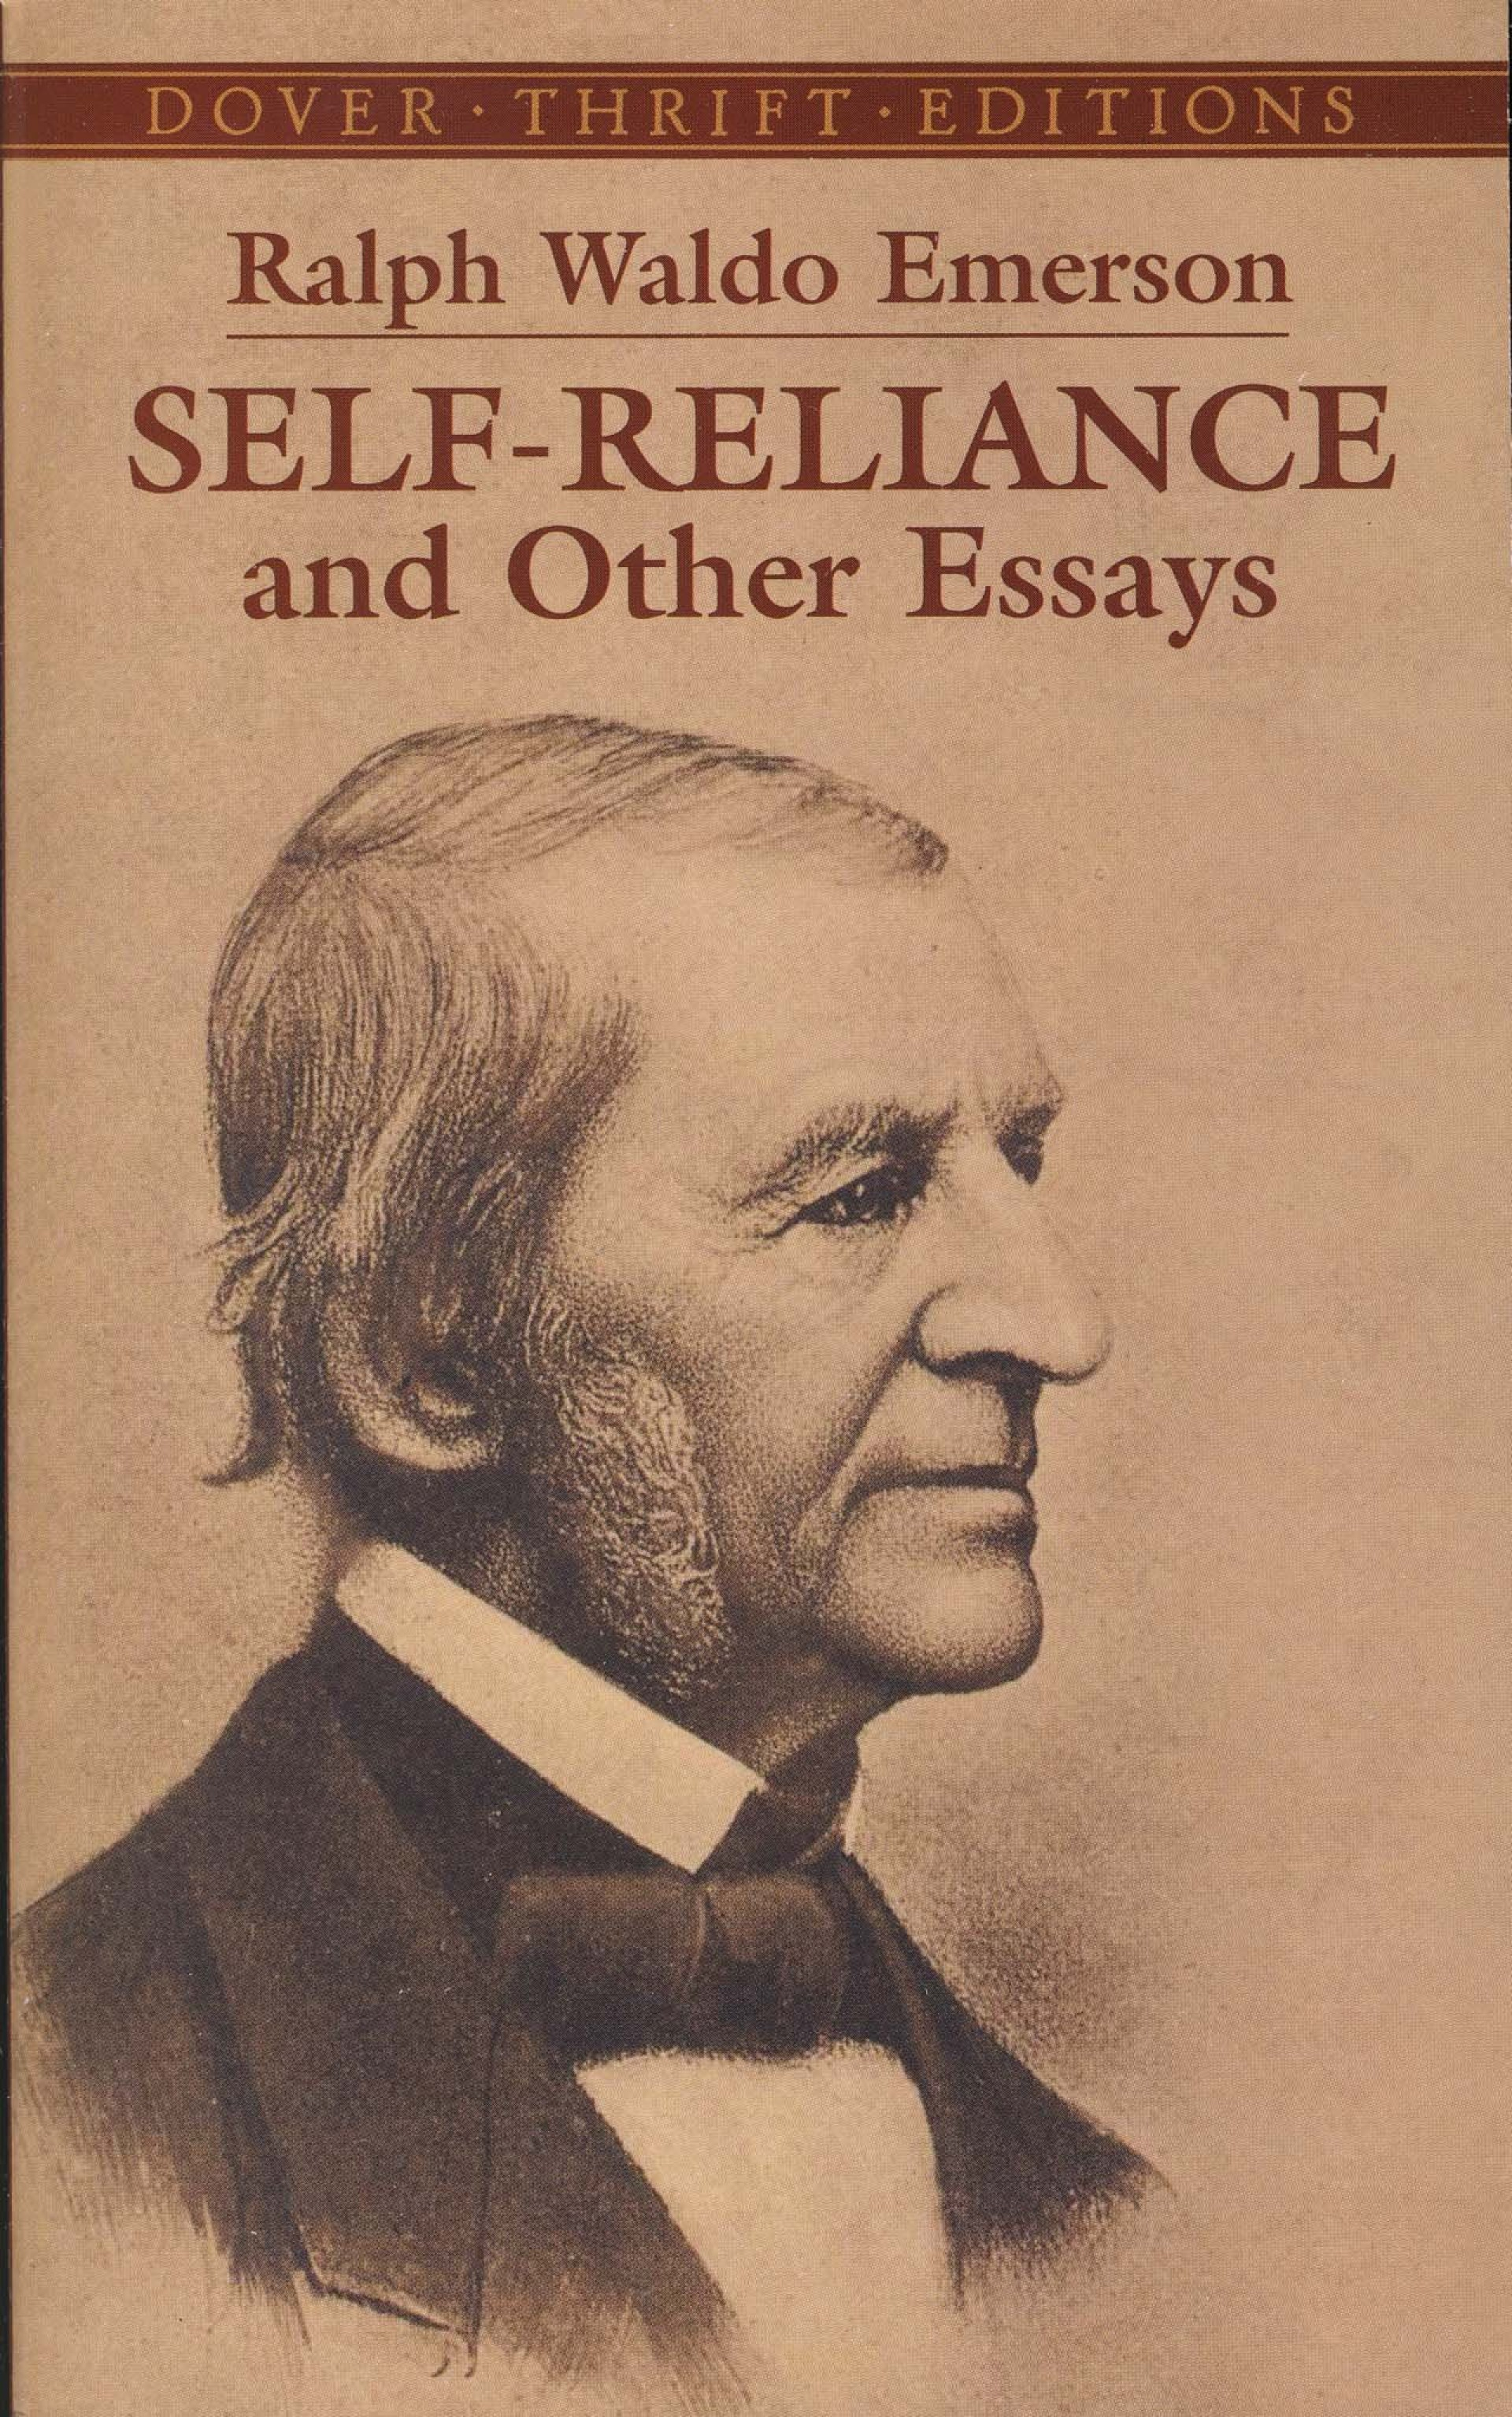 002 Essay Example Ralph Waldo Emerson Essays Unusual Nature And Selected By Pdf Download First Second Series 1920